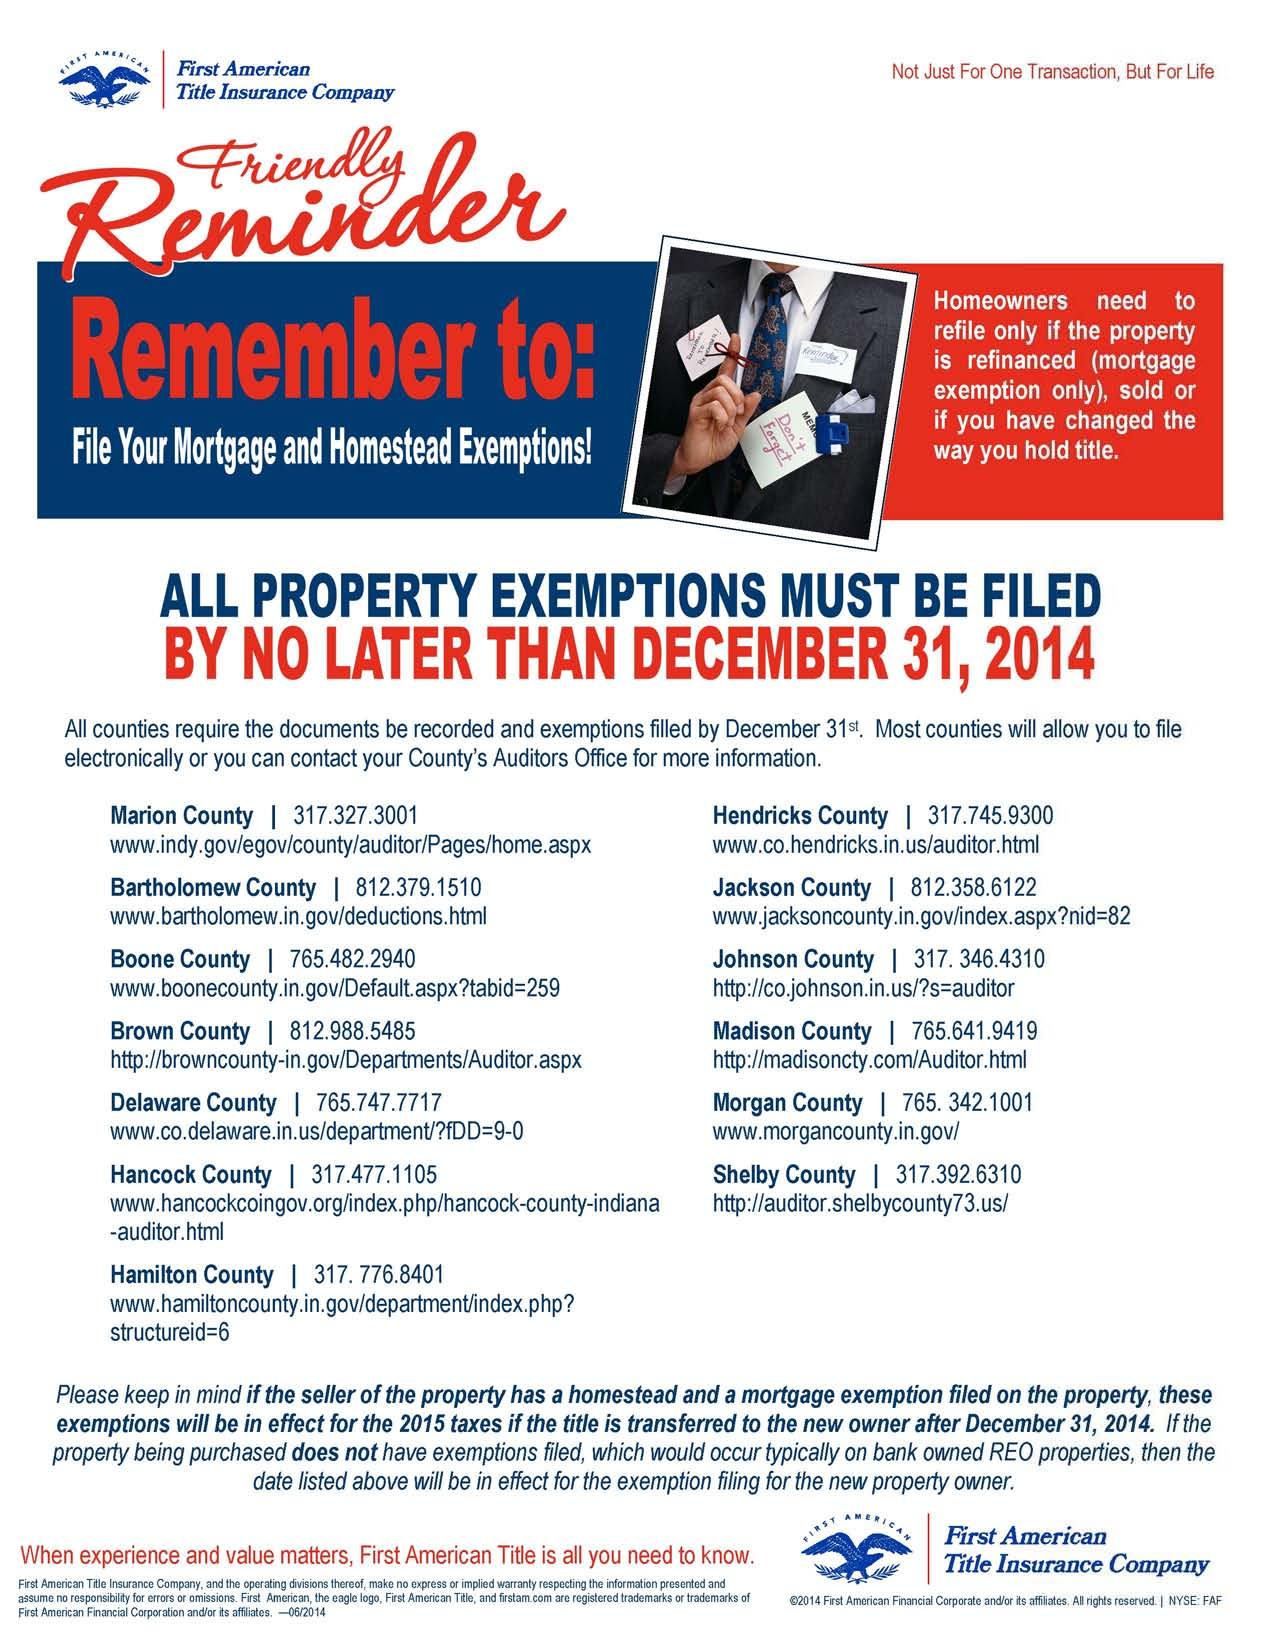 Don't forget to File your Exemptions!